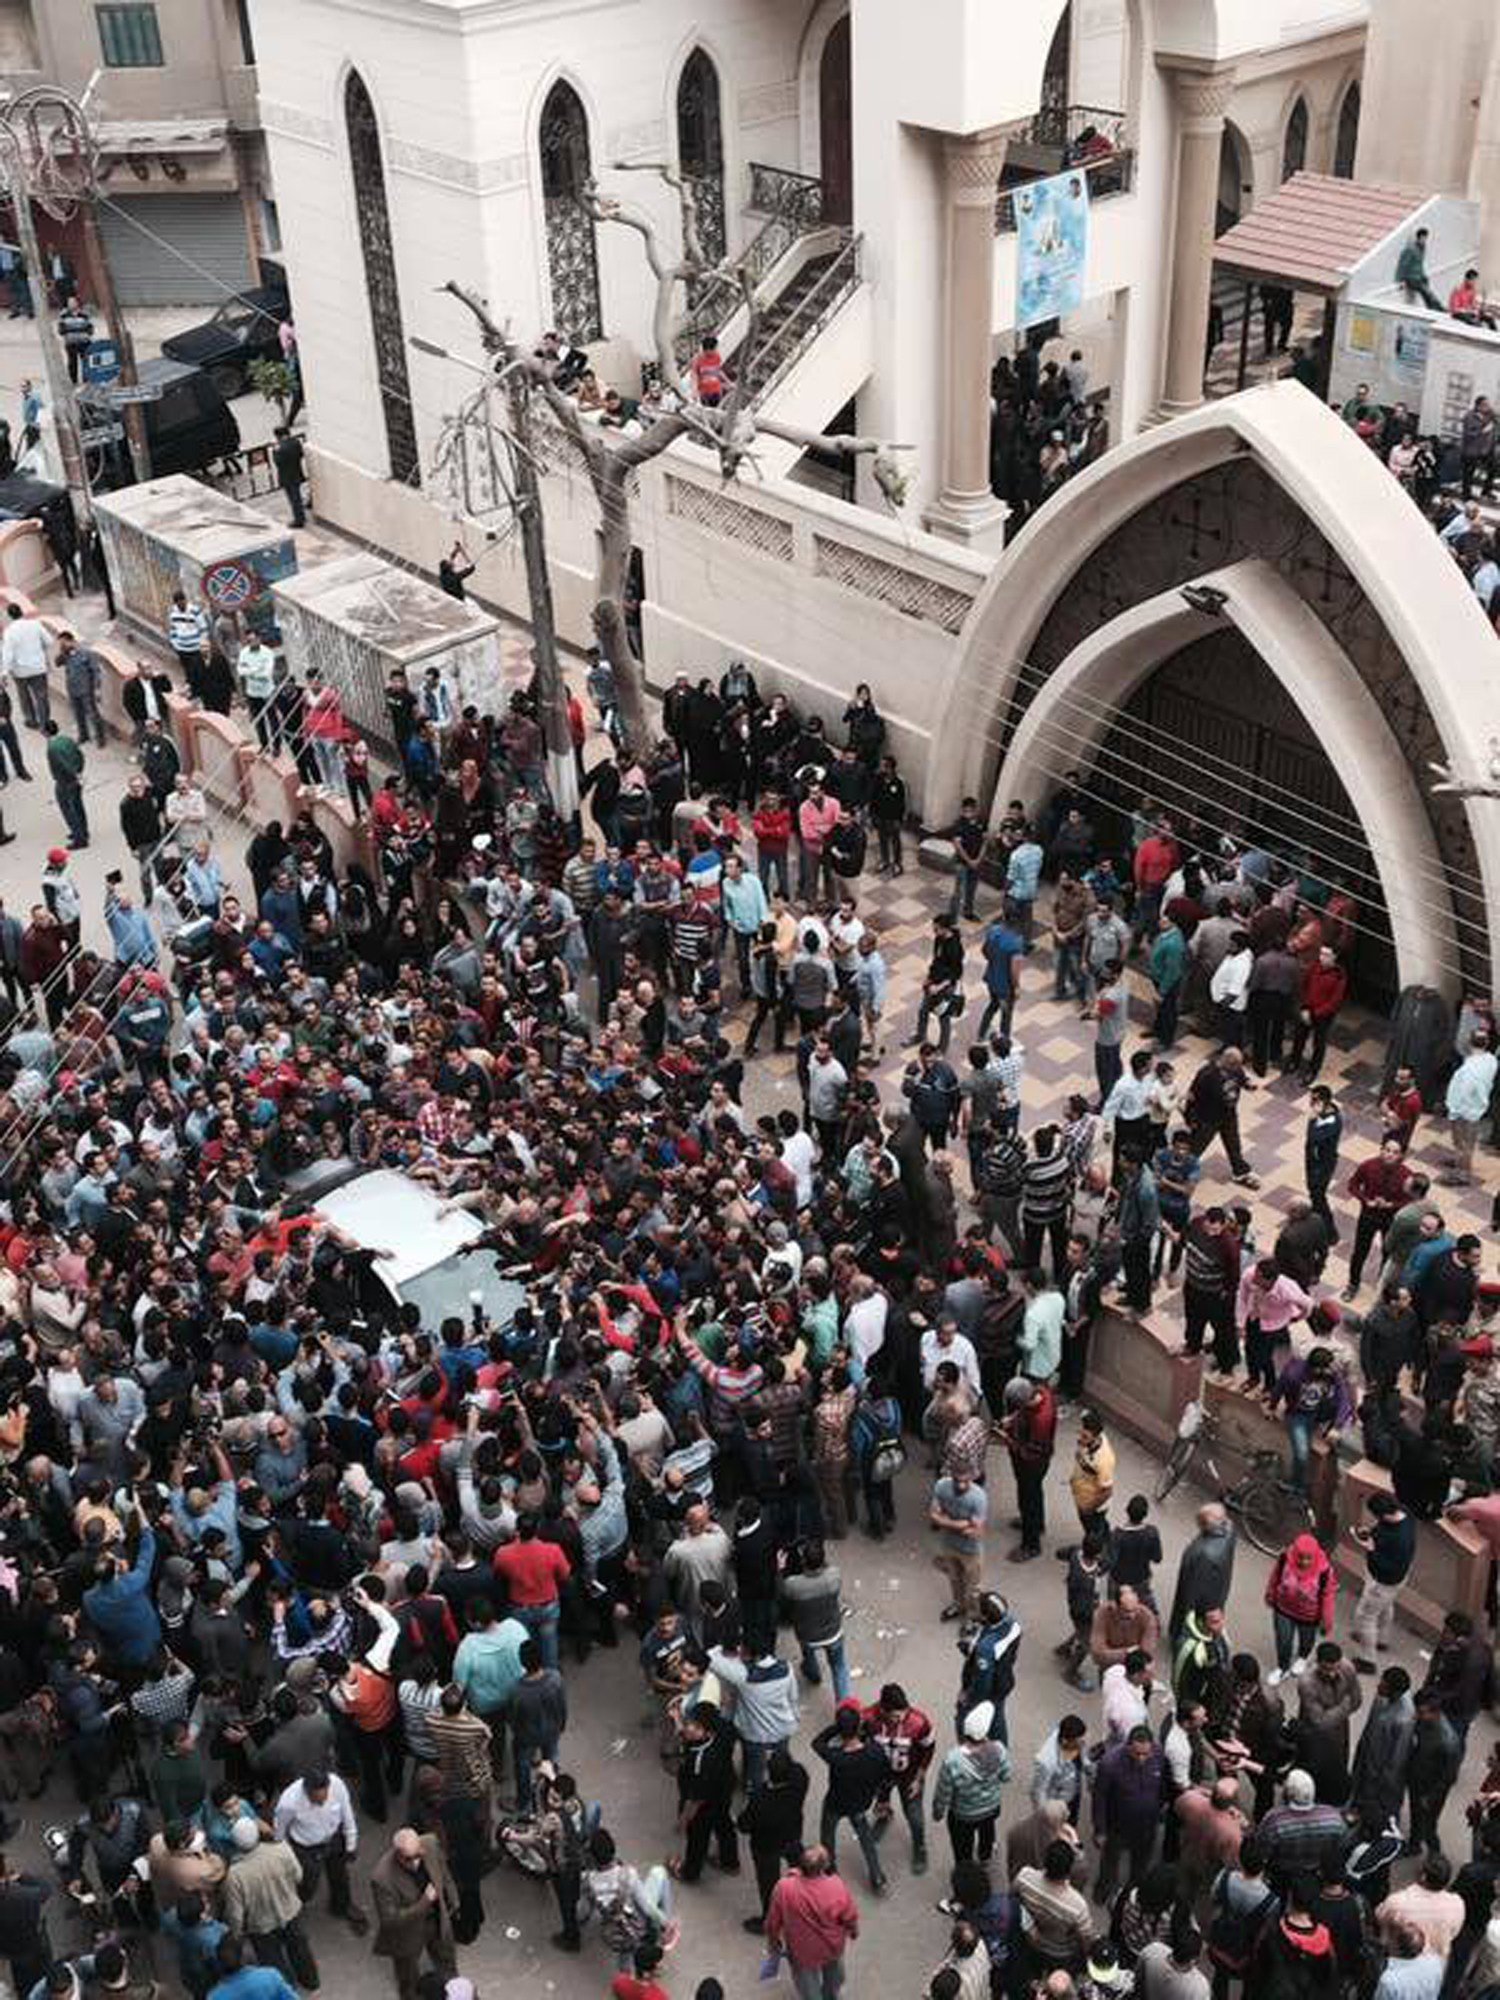 Relatives and onlookers swarm around a car outside a church after a bomb attack in the Nile Delta town of Tanta, Egypt, Sunday, April 9, 2017. (AP Photo/Nariman El-Mofty)